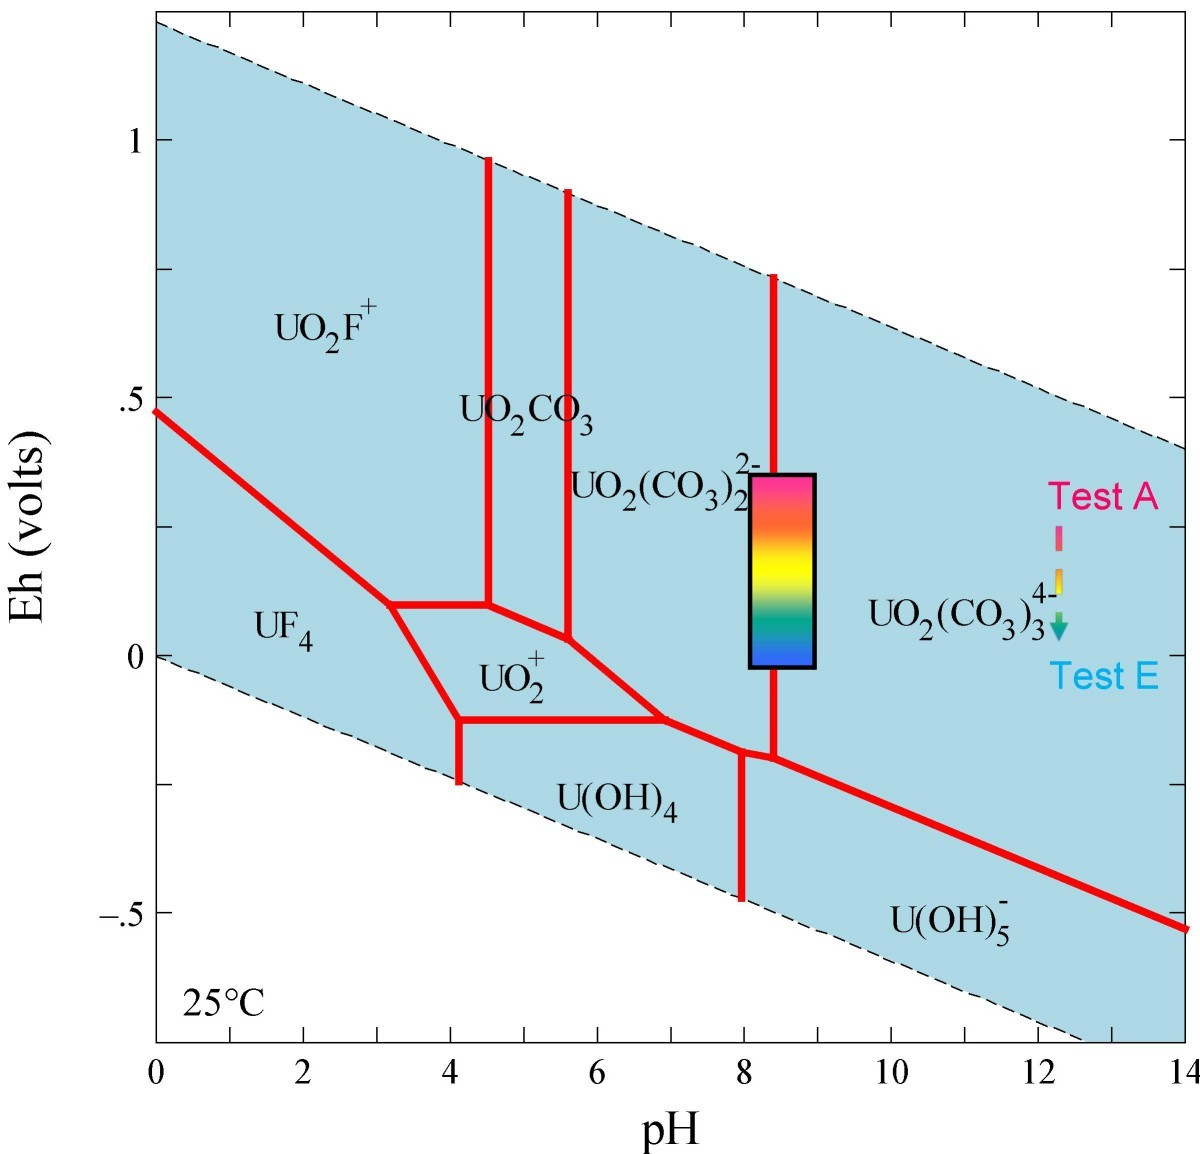 effect of reducing groundwater on the retardation of redox